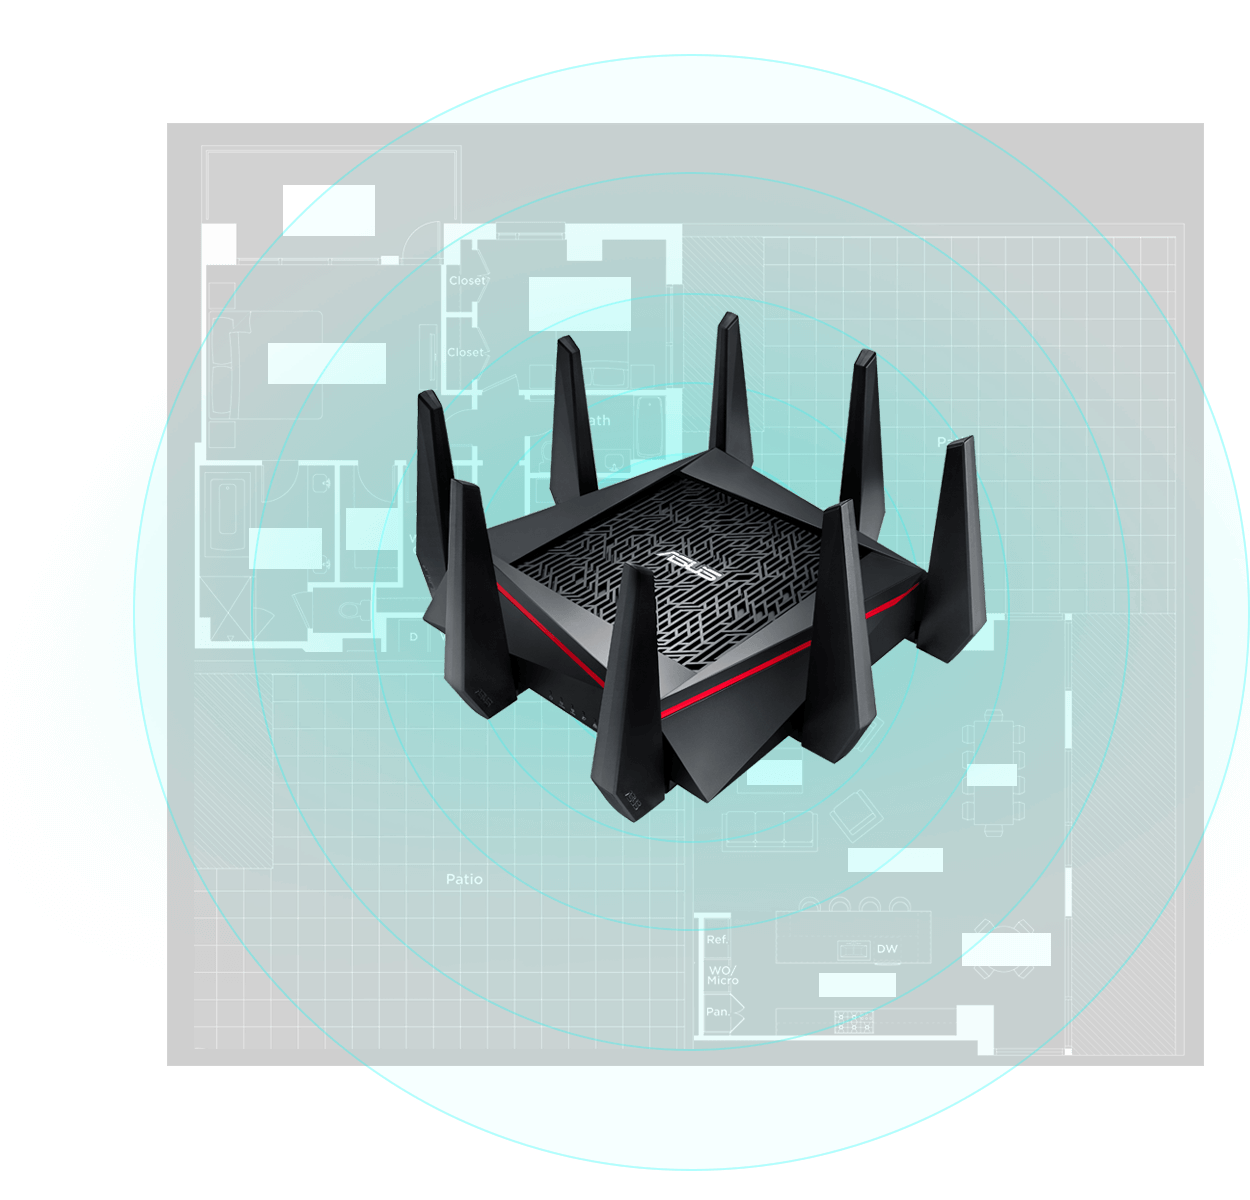 RT-AC5300 features AiRadar with universal beamforming to make your Wi-Fi faster, clearer and stronger